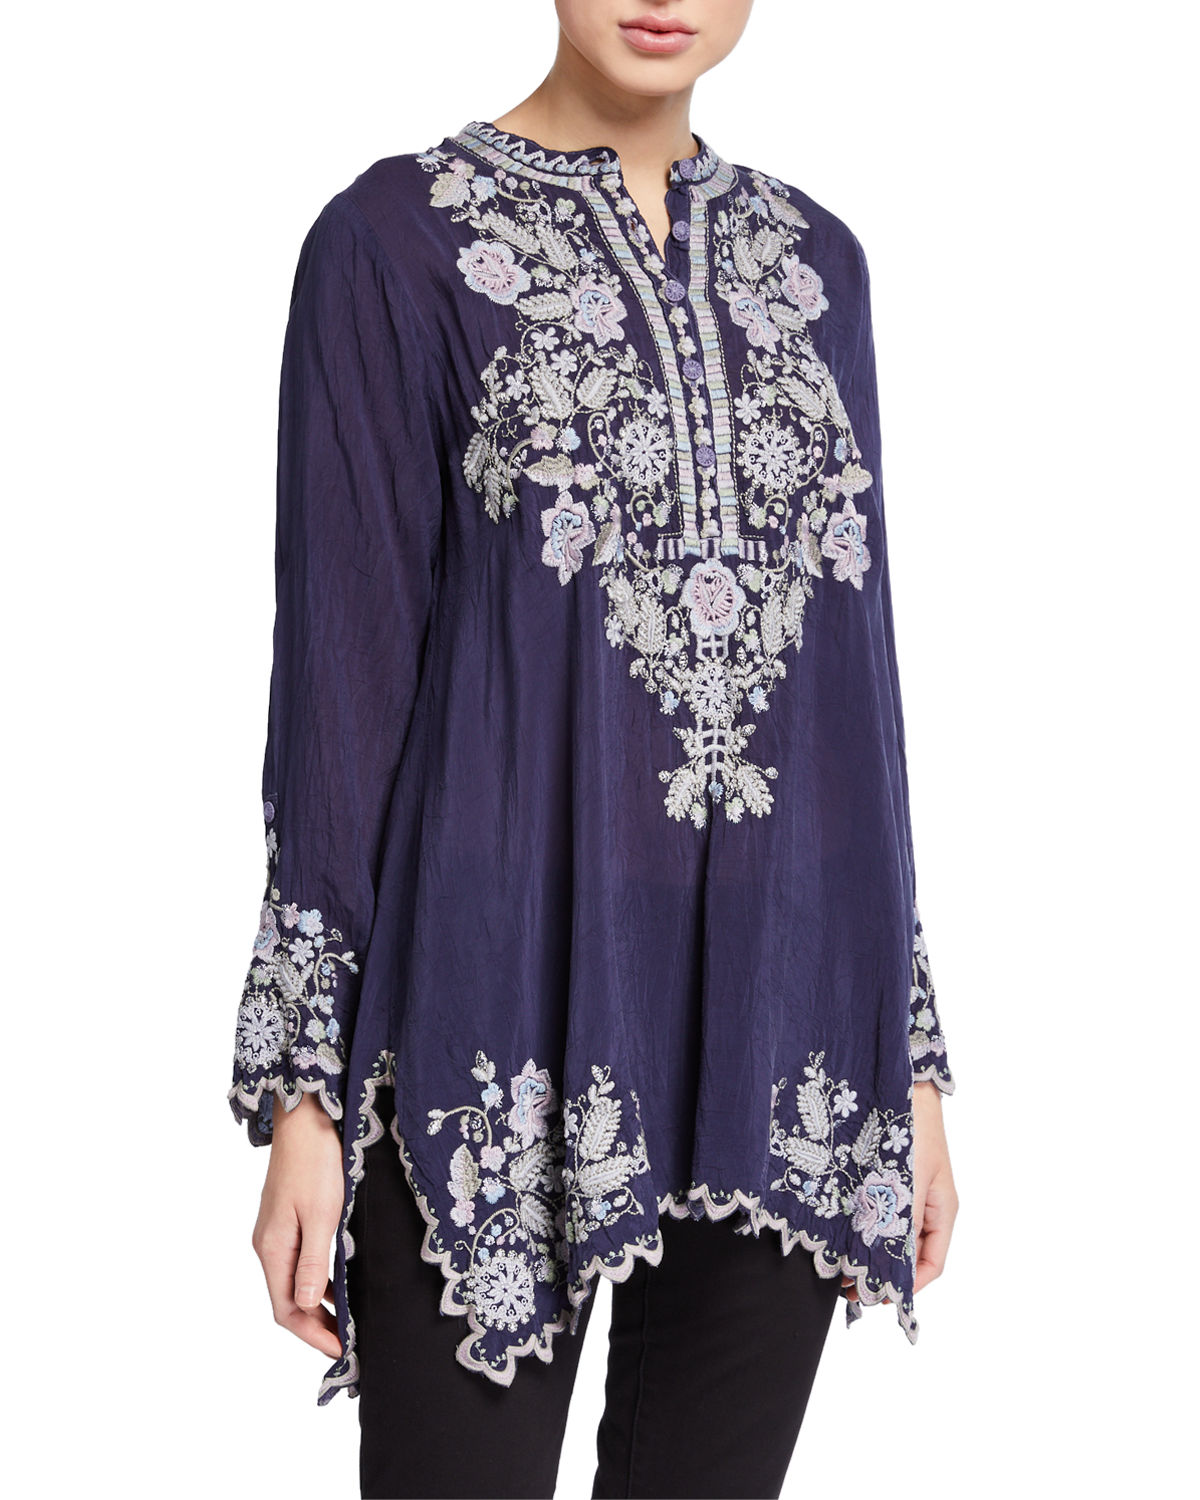 Johnny Was PLUS SIZE MAYAN IVORY EMBROIDERED LONG-SLEEVE TUNIC